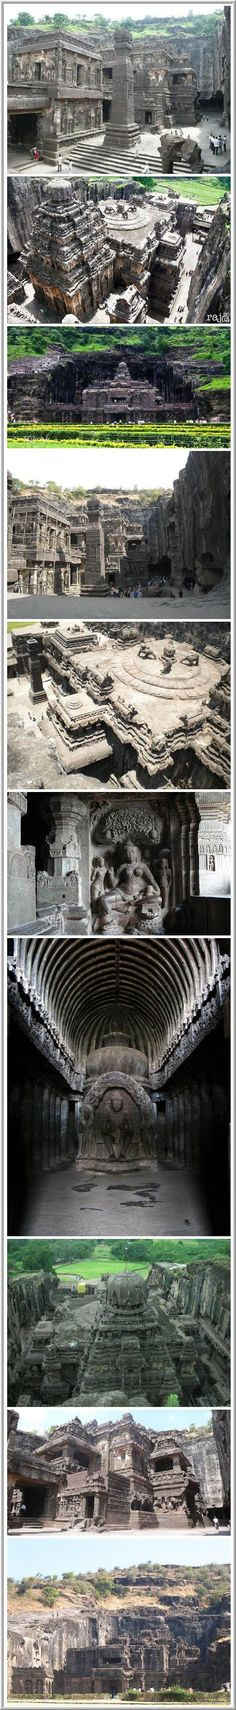 Ajanta & Ellora Caves: Cave Hindu temples of India. In the Indian state of Maharashtra is the village of Ajanta & Ellora with incredible Temples carved into the mountain Charanandri by ancient Indian architects & engineers. Ellora – the official World Heritage Site by UNESCO. The caves consist of 27 Hindu temples built during the 100BC – a sign of Hindu religious harmony that has prevailed in India.: